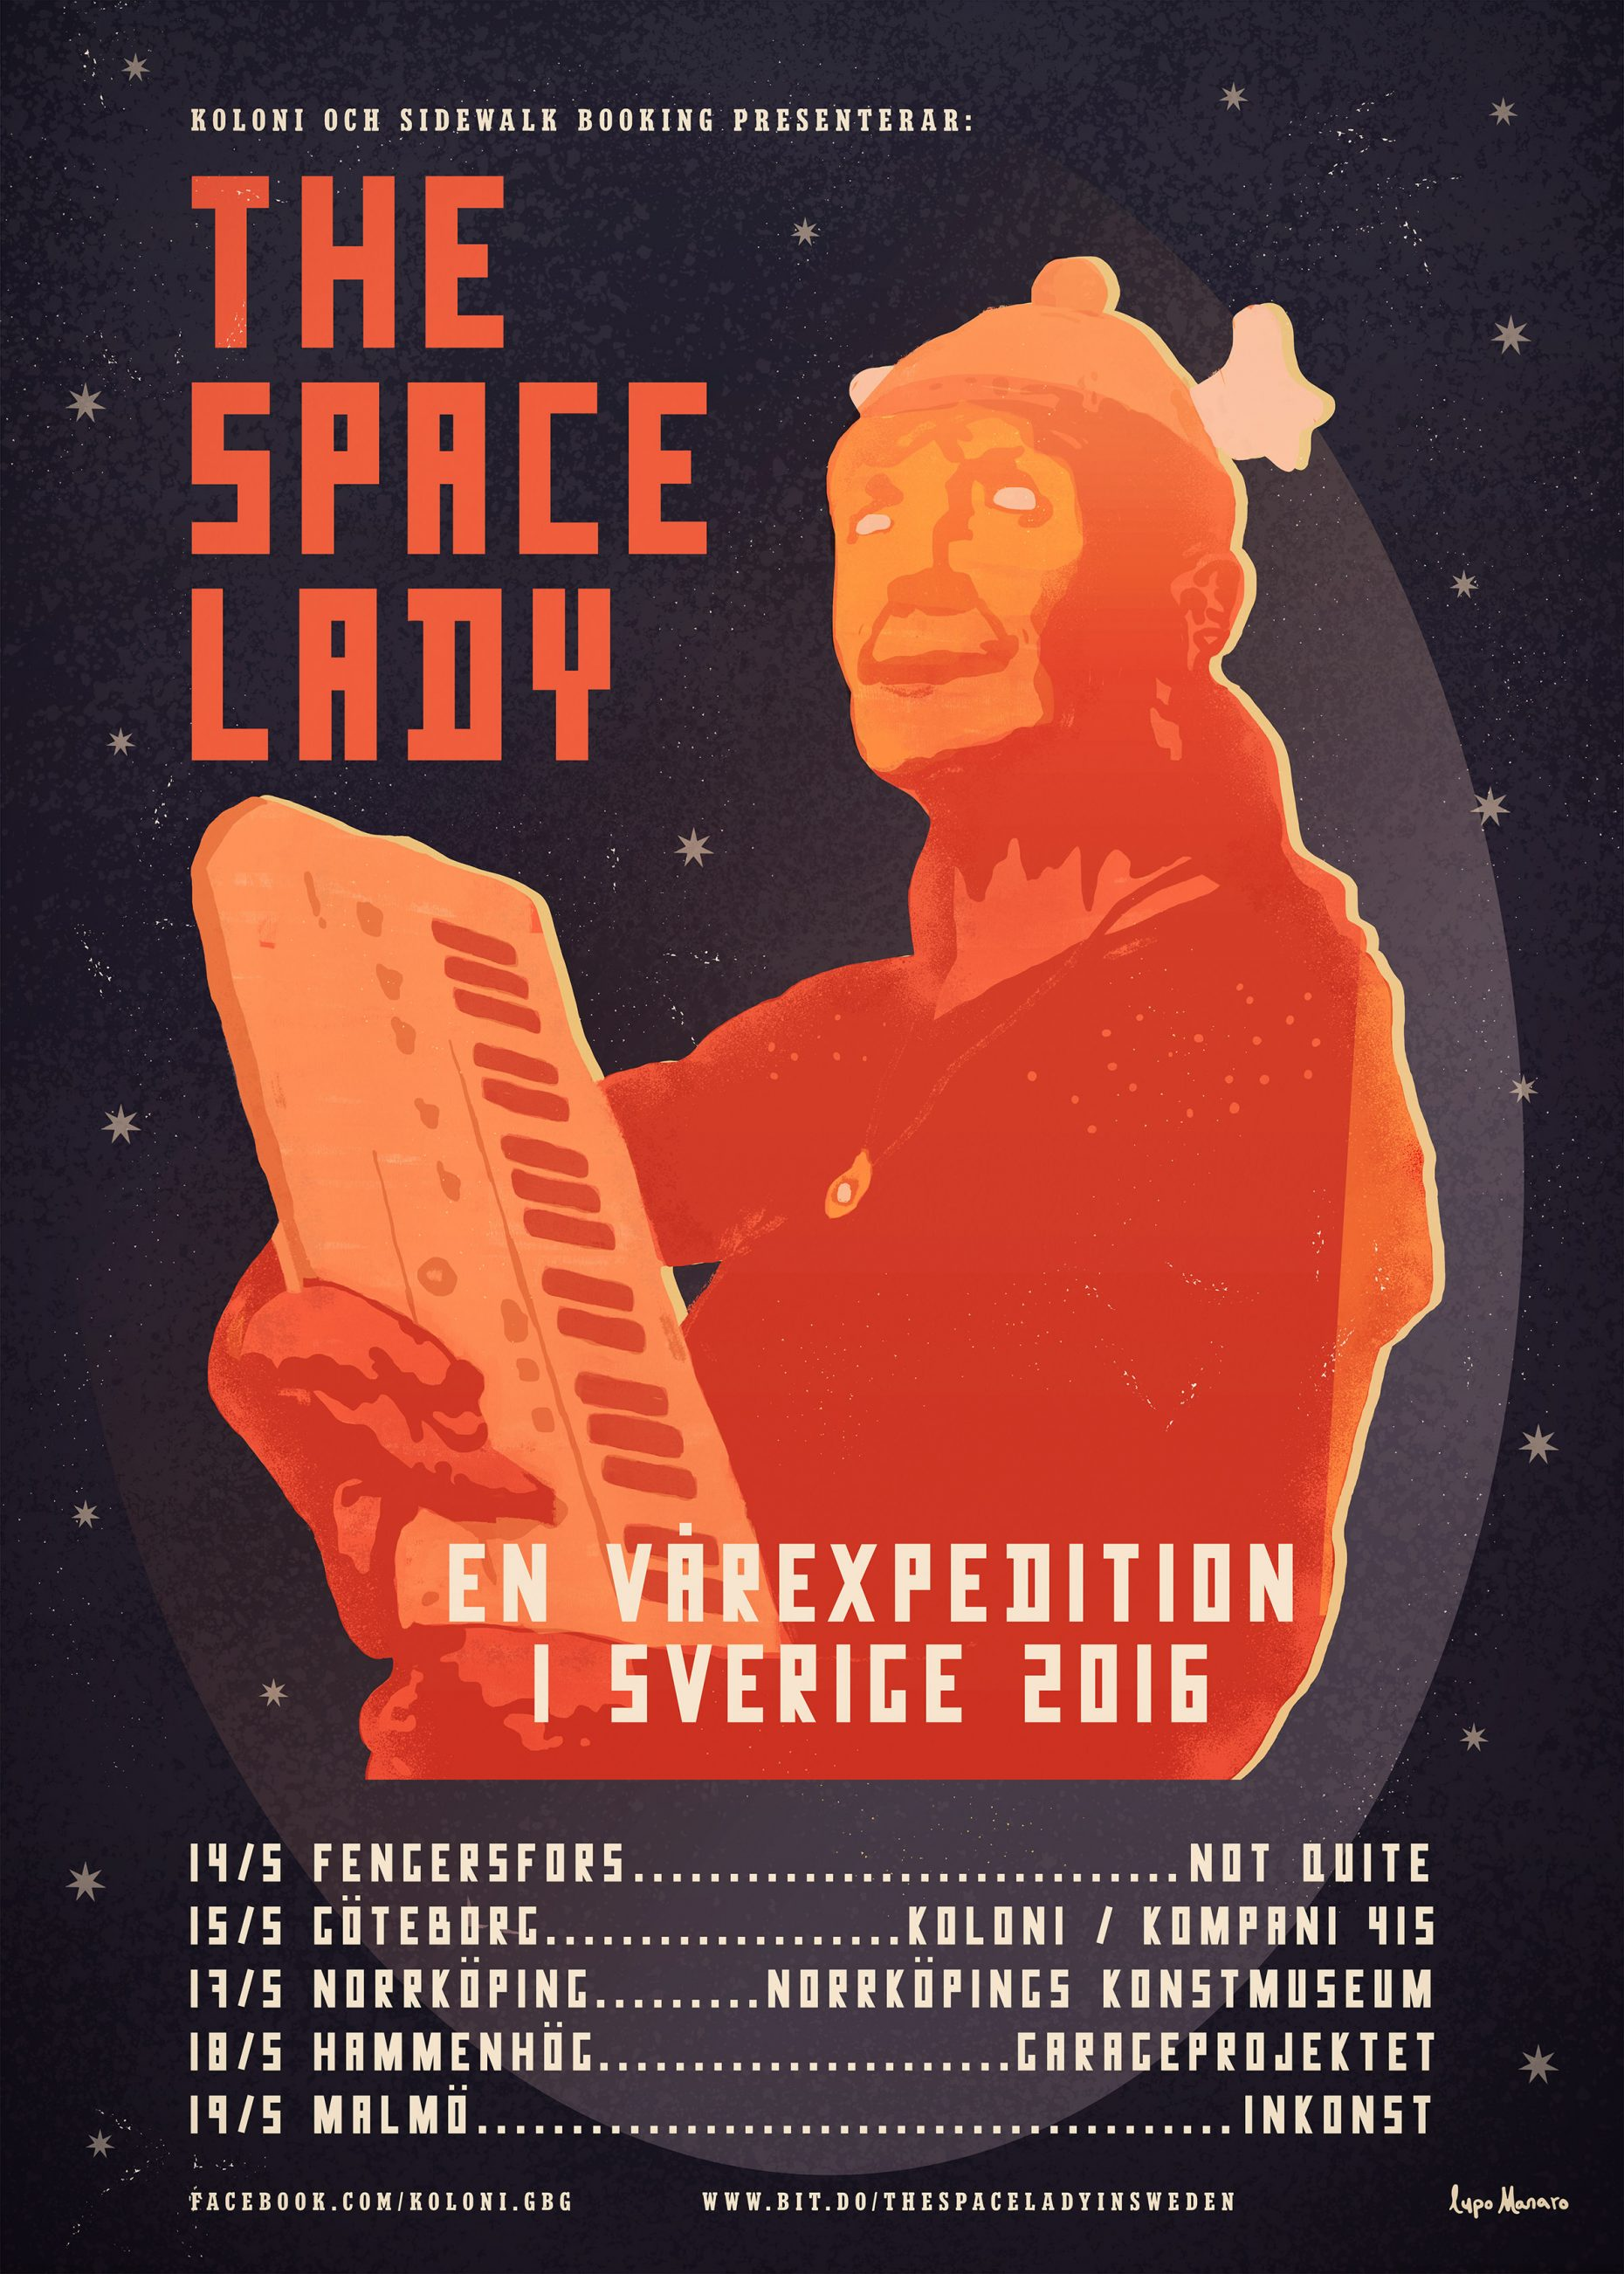 The Space Lady holdning a synthesizer